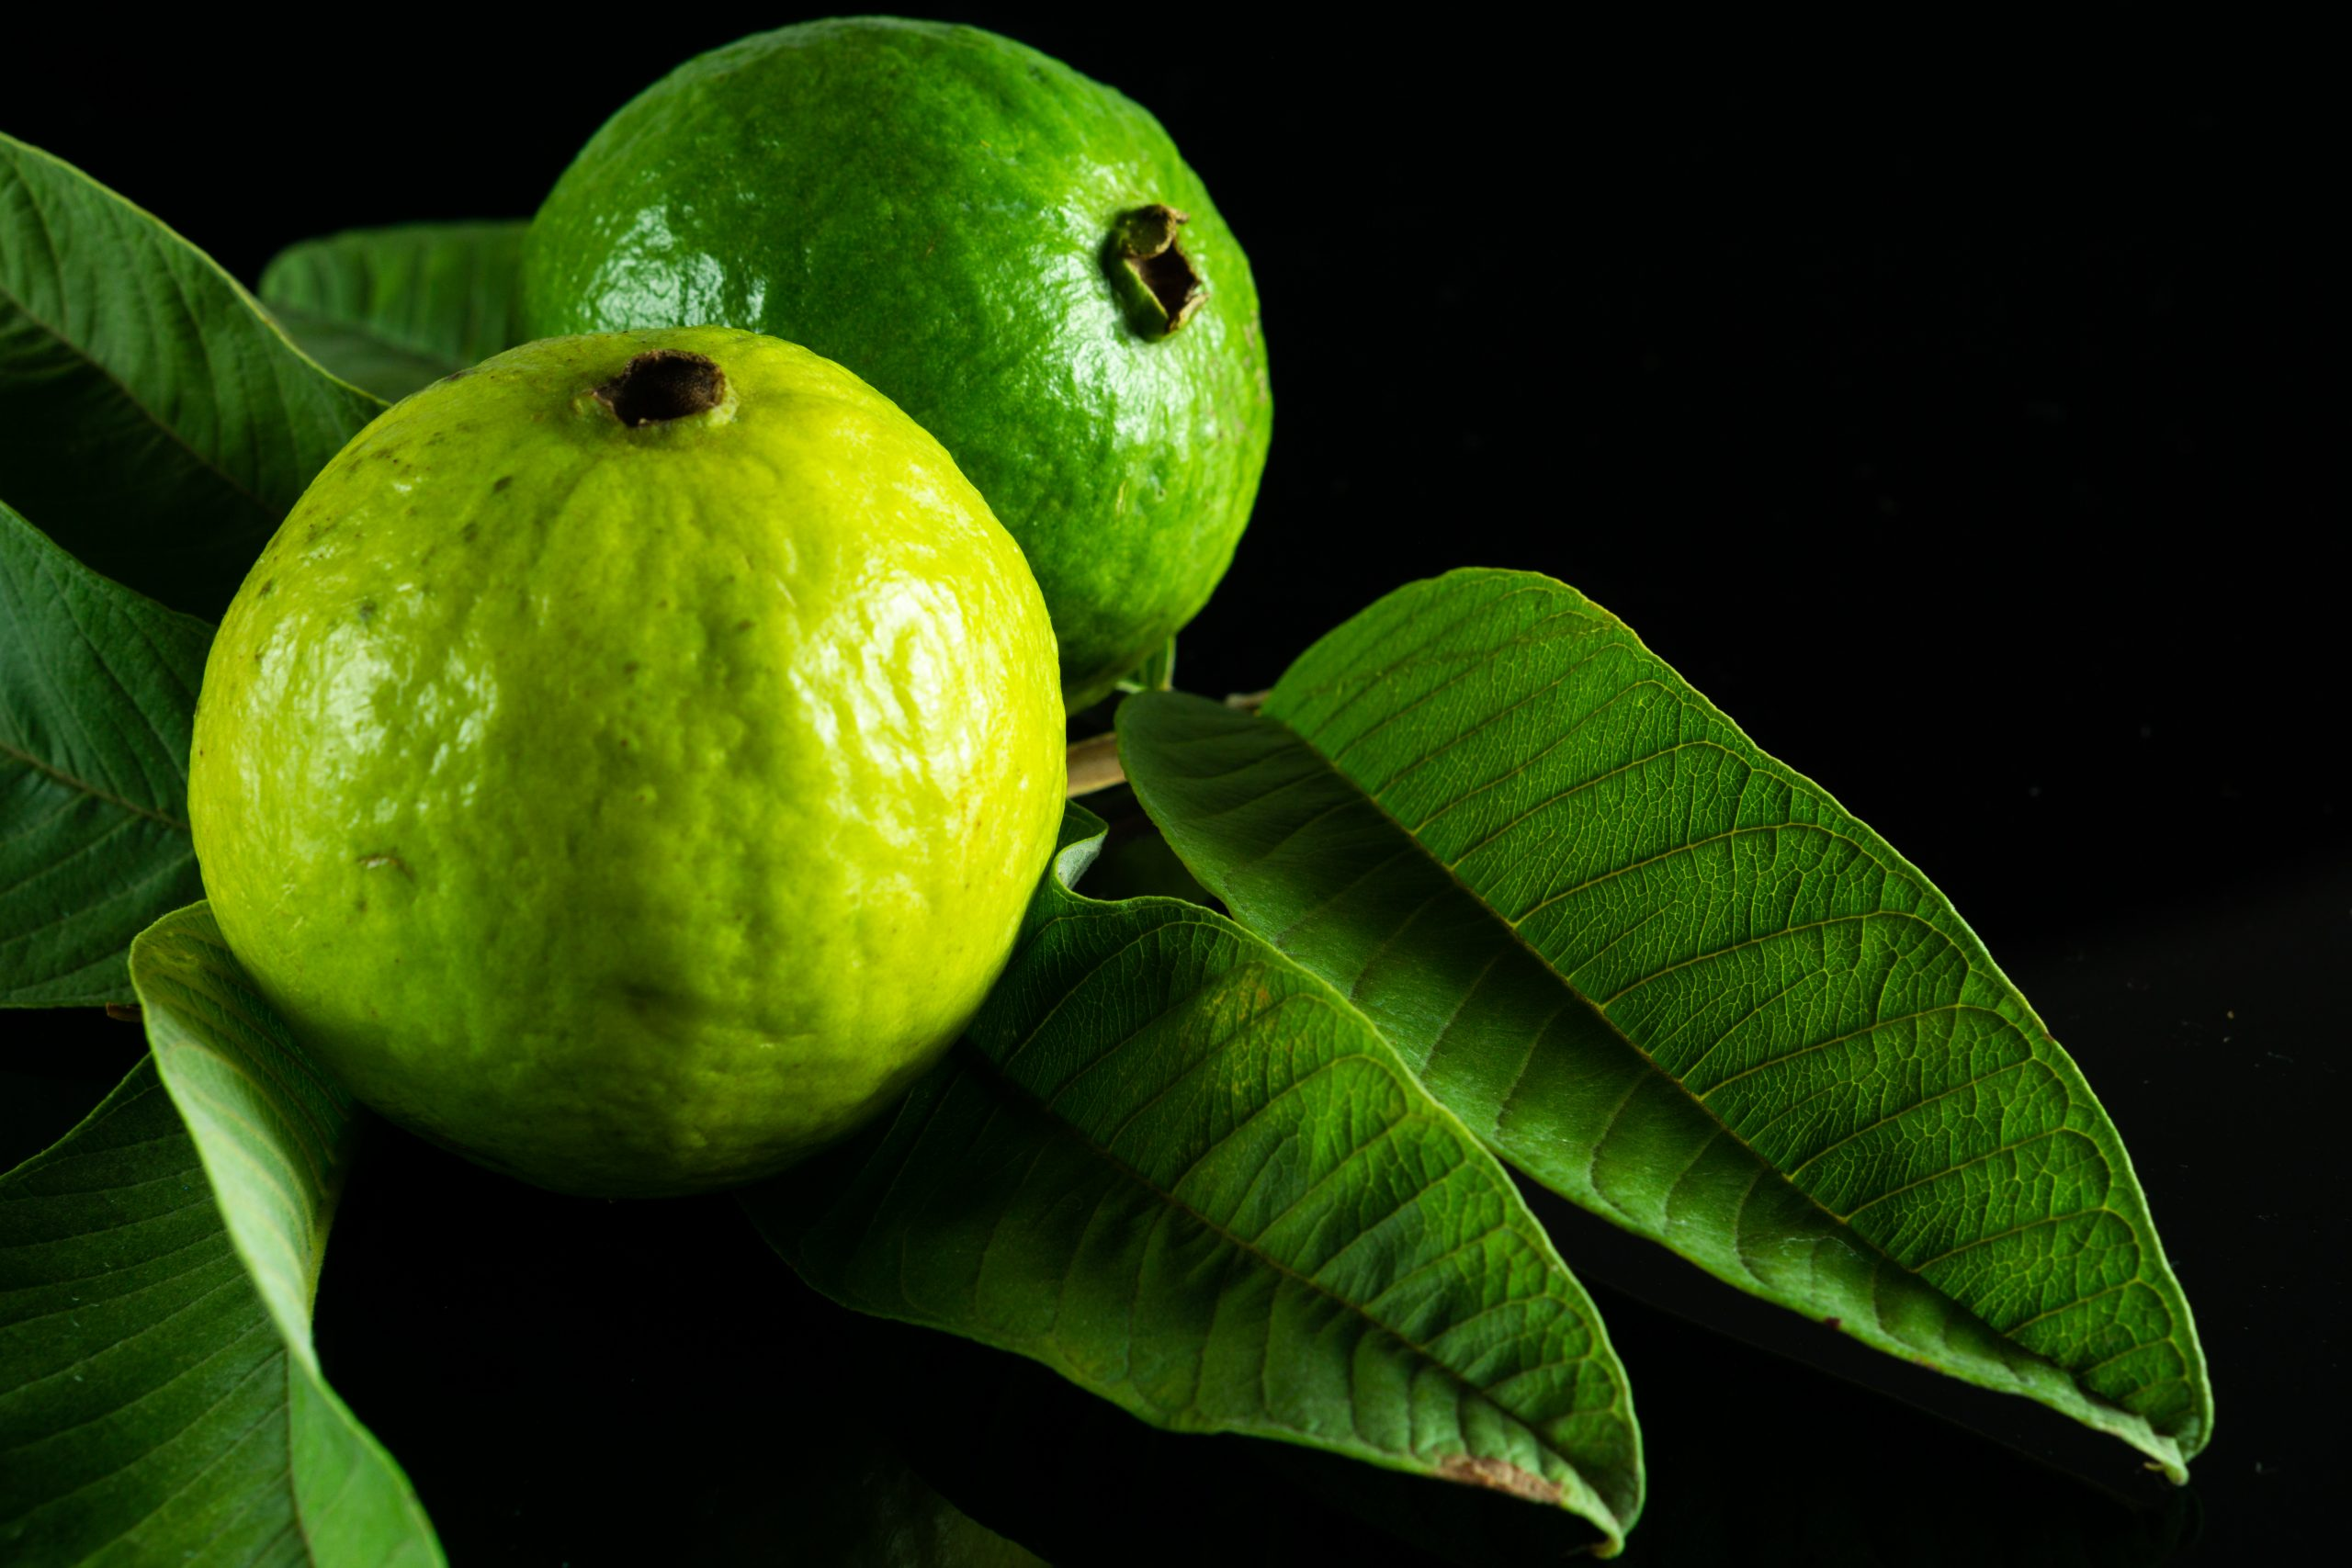 Guava fruit and its leaves